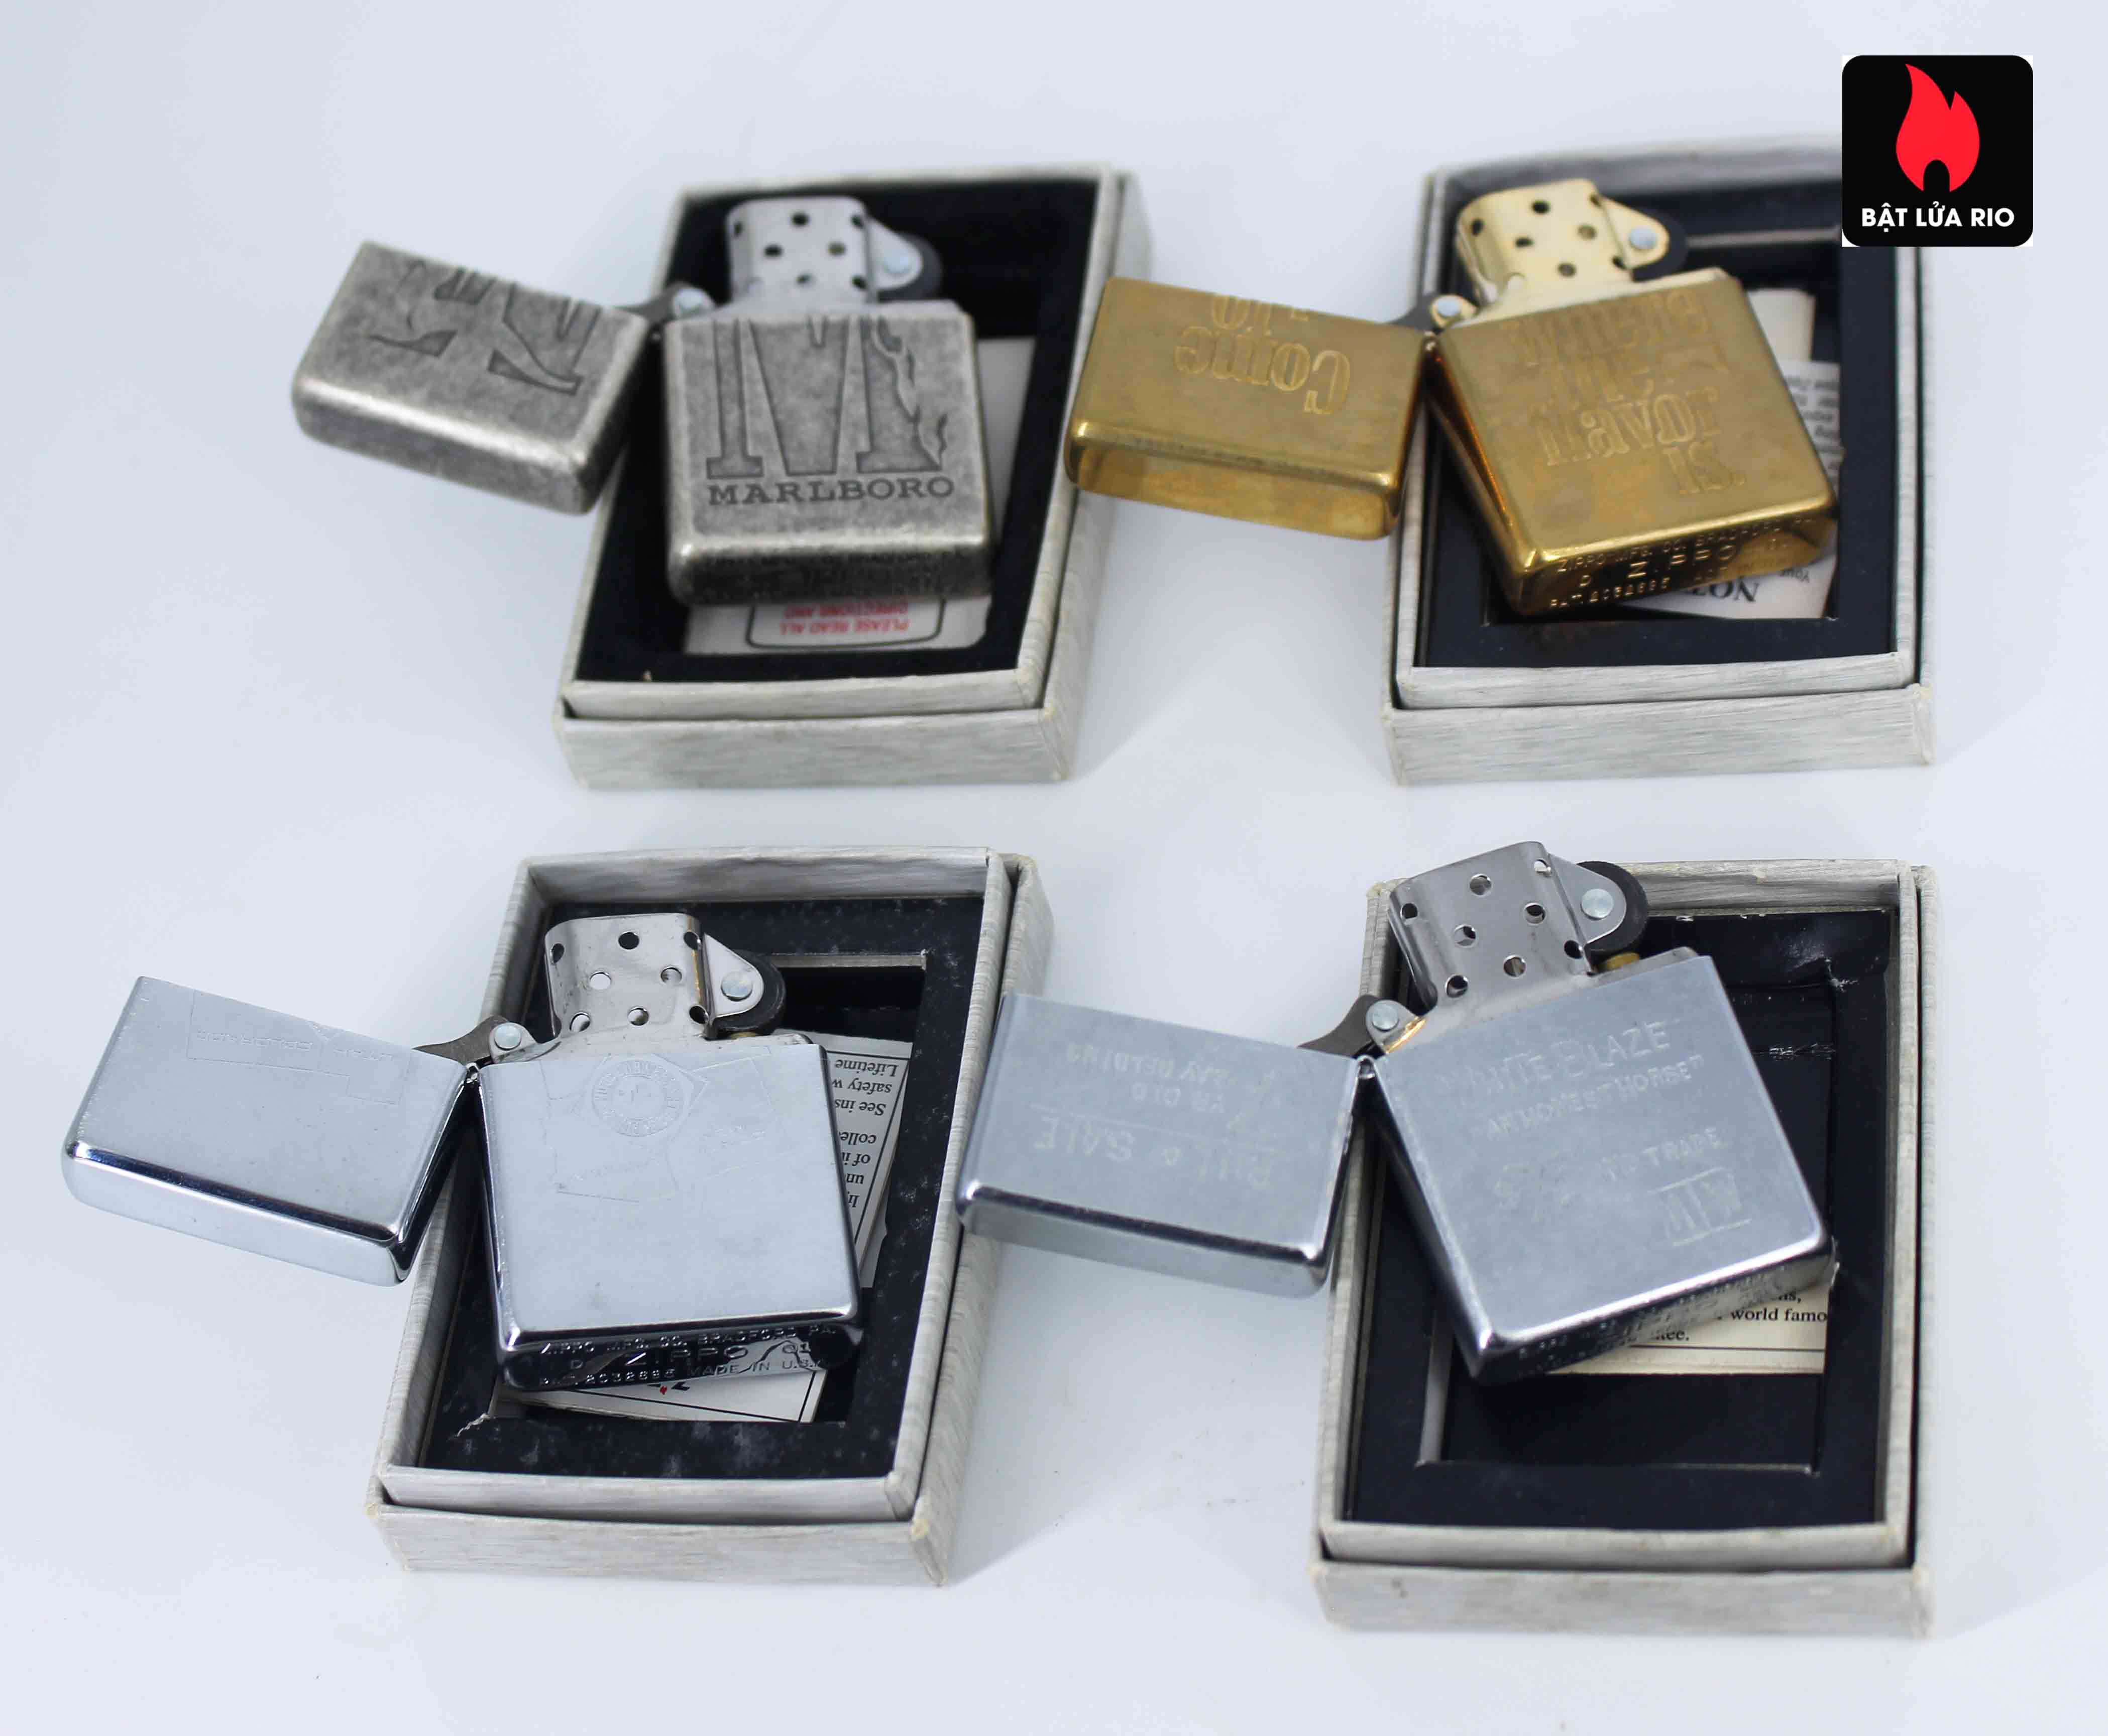 Zippo Set - Zippo 2000-2001 - Marlboro collection Limited Edition 2